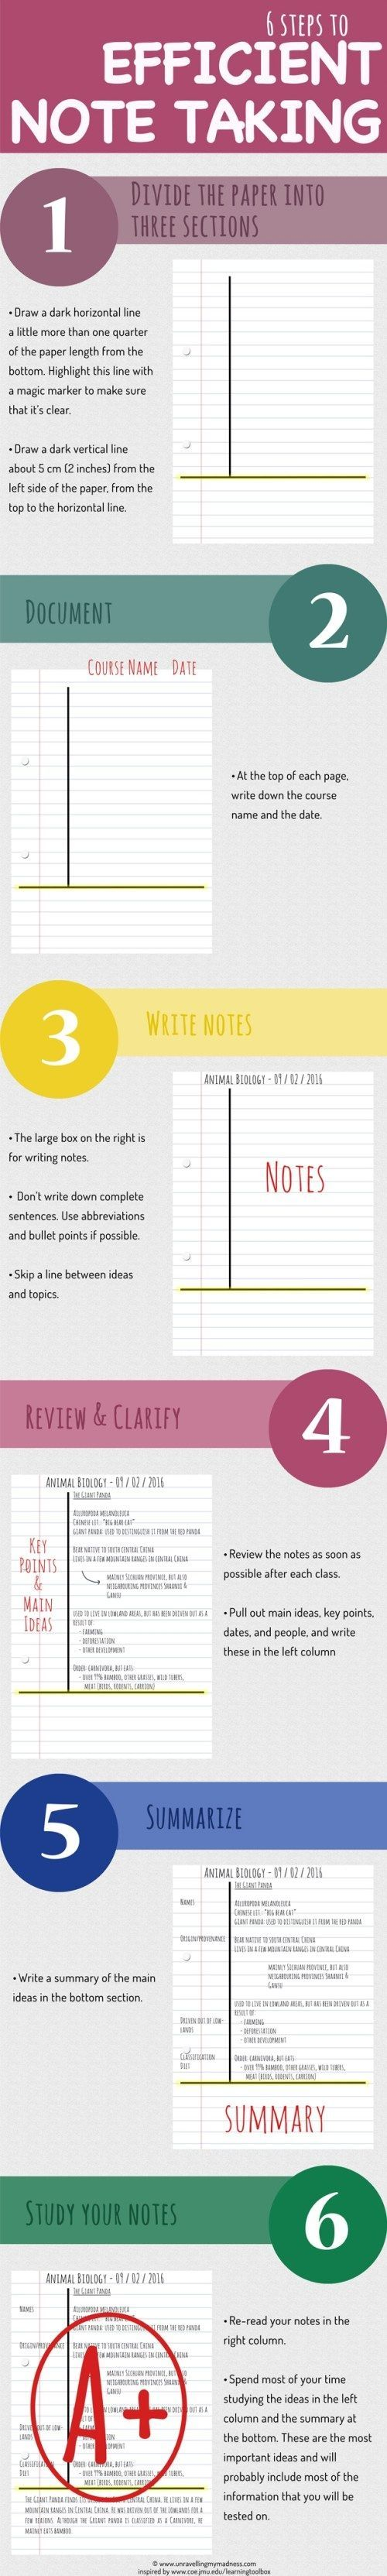 6 steps to efficient note taking. The ultimate guide to getting the most out of your note for your finals. by jeri